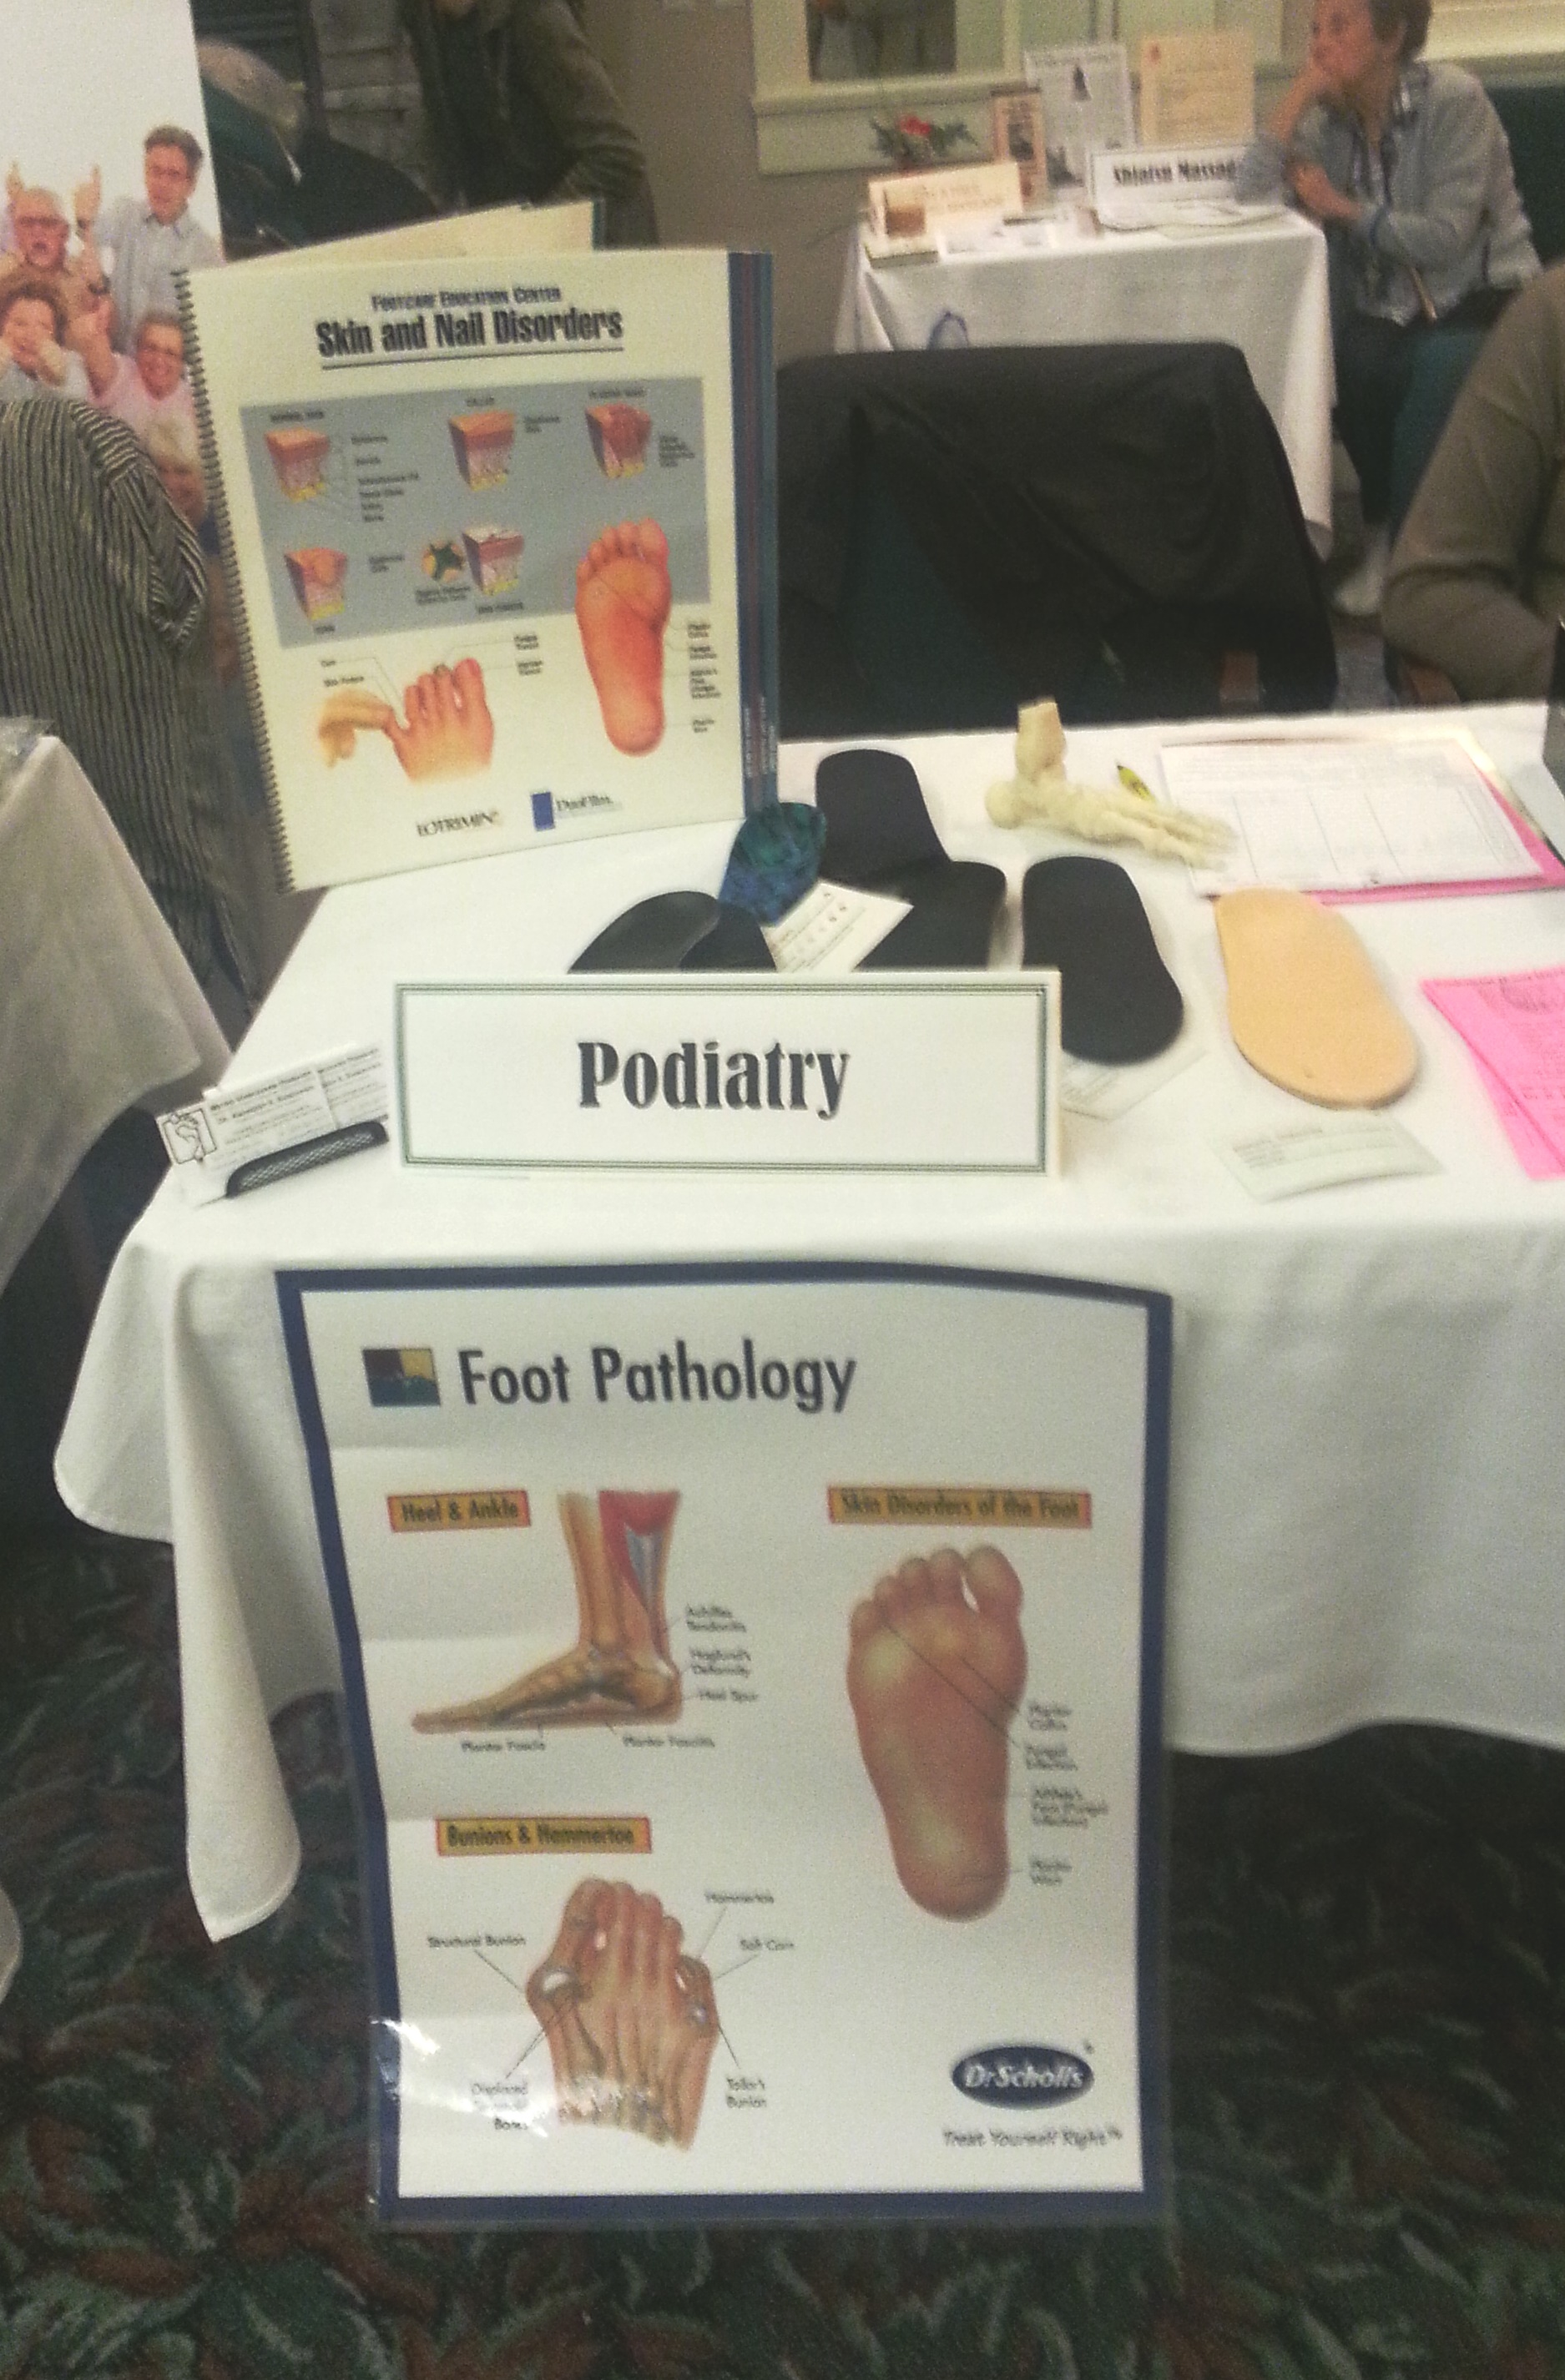 Metro Vancouver Podiatry attended the Seniors Health Fair at Shannon Oaks independent living retirement home